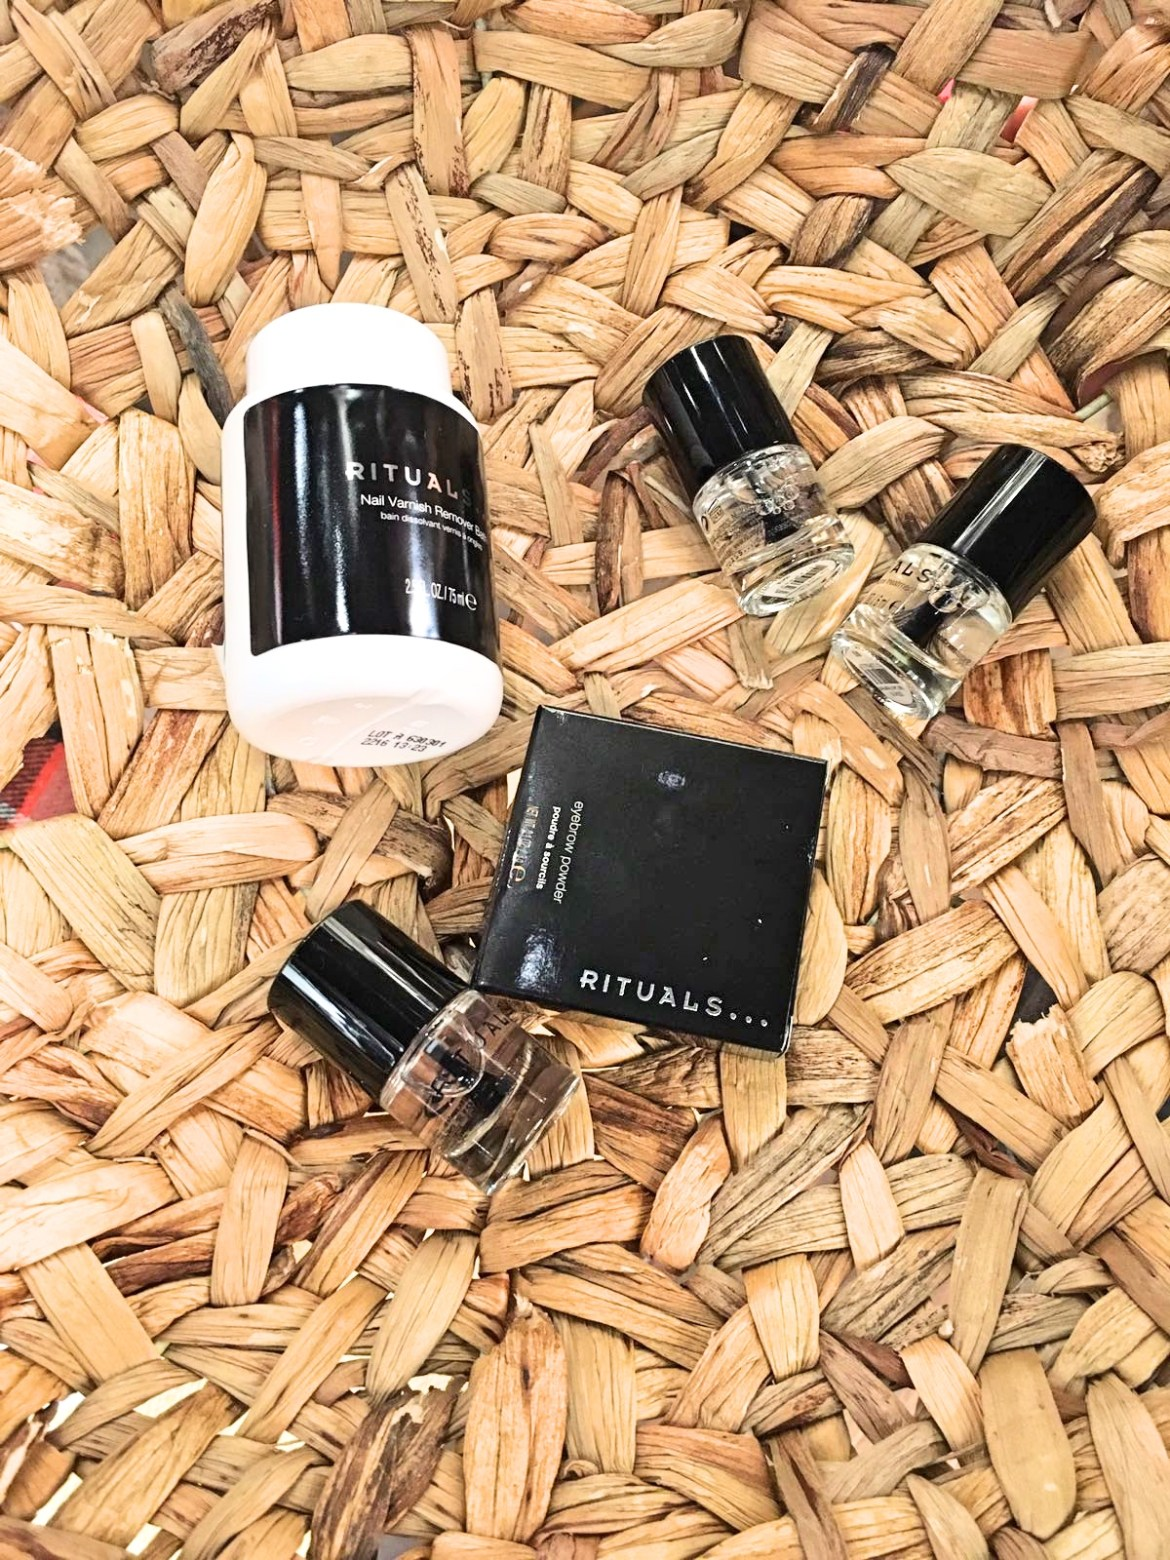 Ritual products